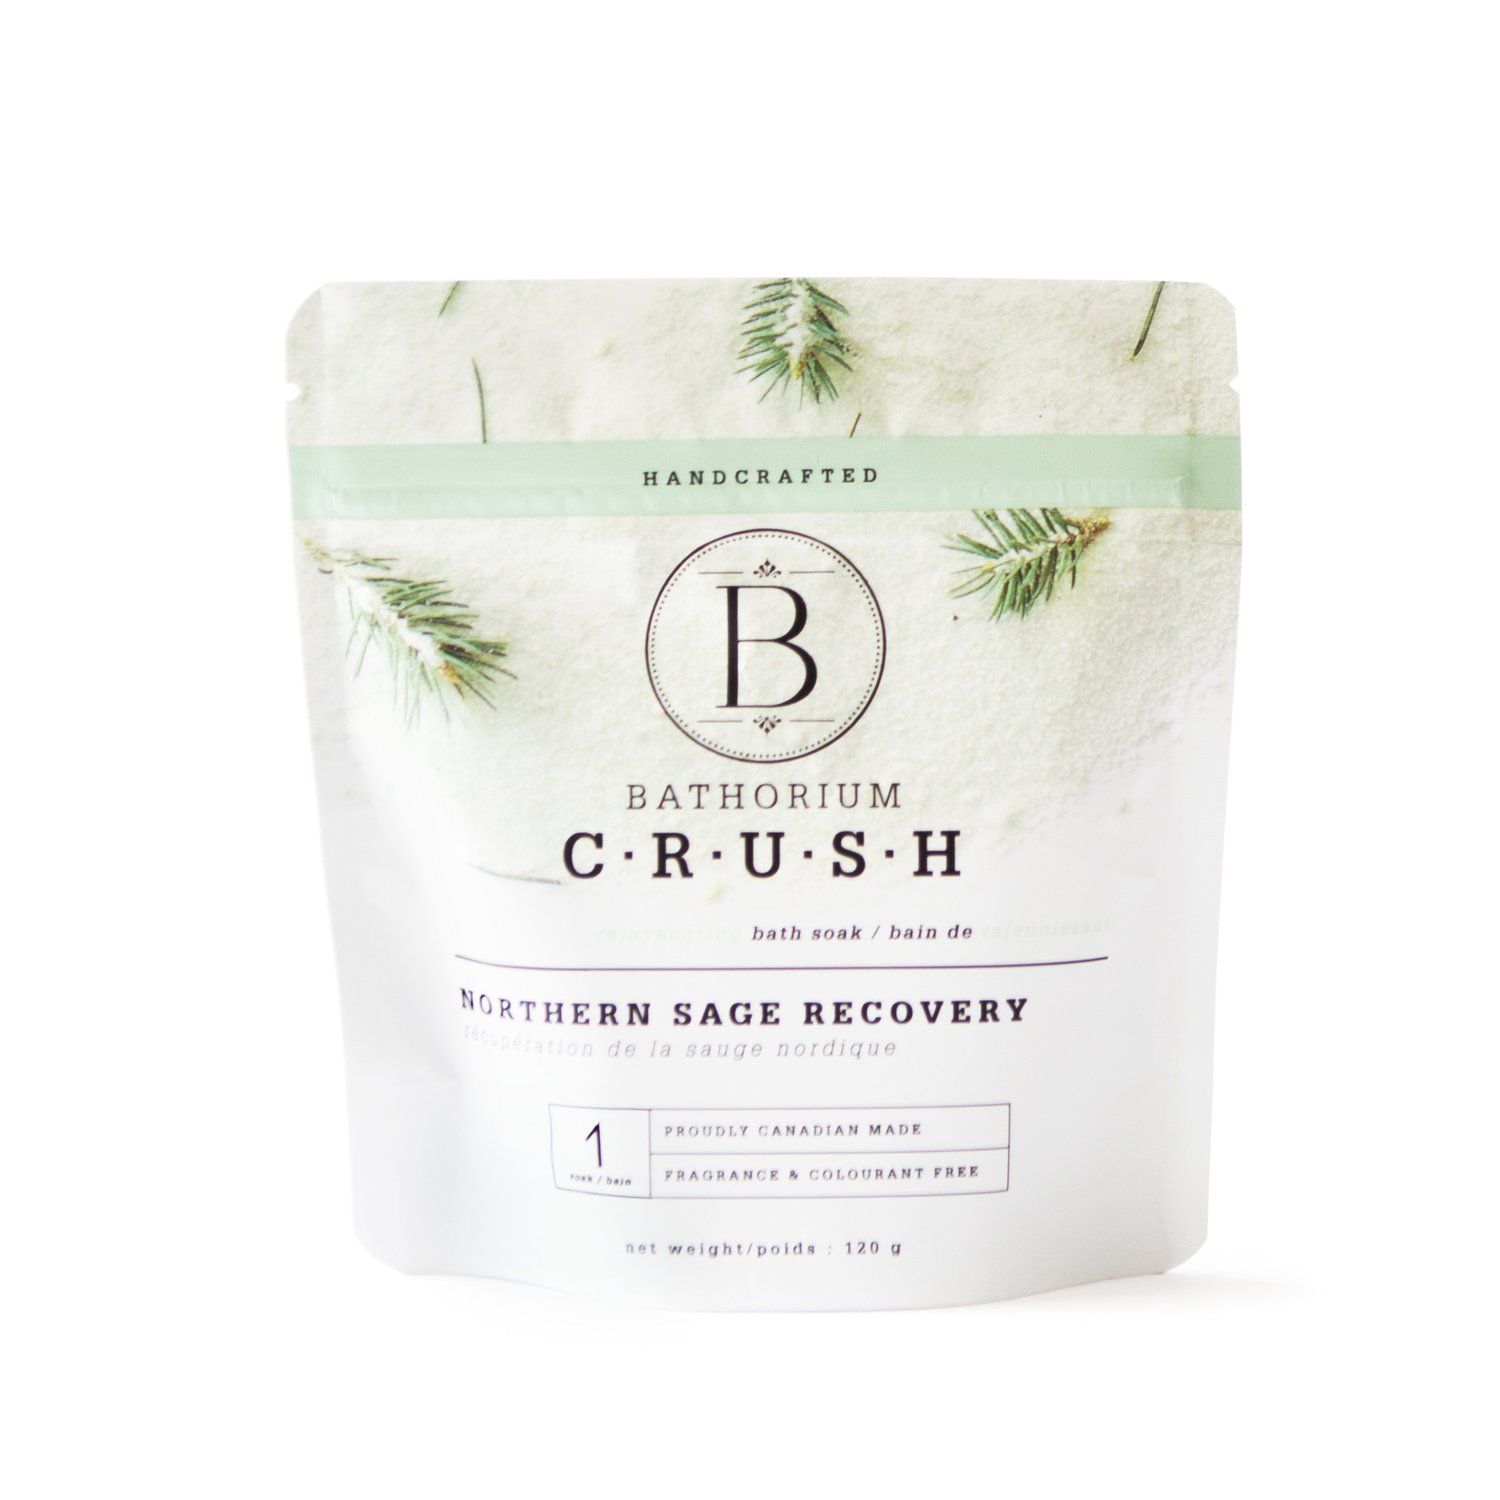 Truly Canadian The Truth Beauty Company Perfect White Clay 120 Gr Foaming Net Northern Sage Recovery Bath Soak By Bathorium